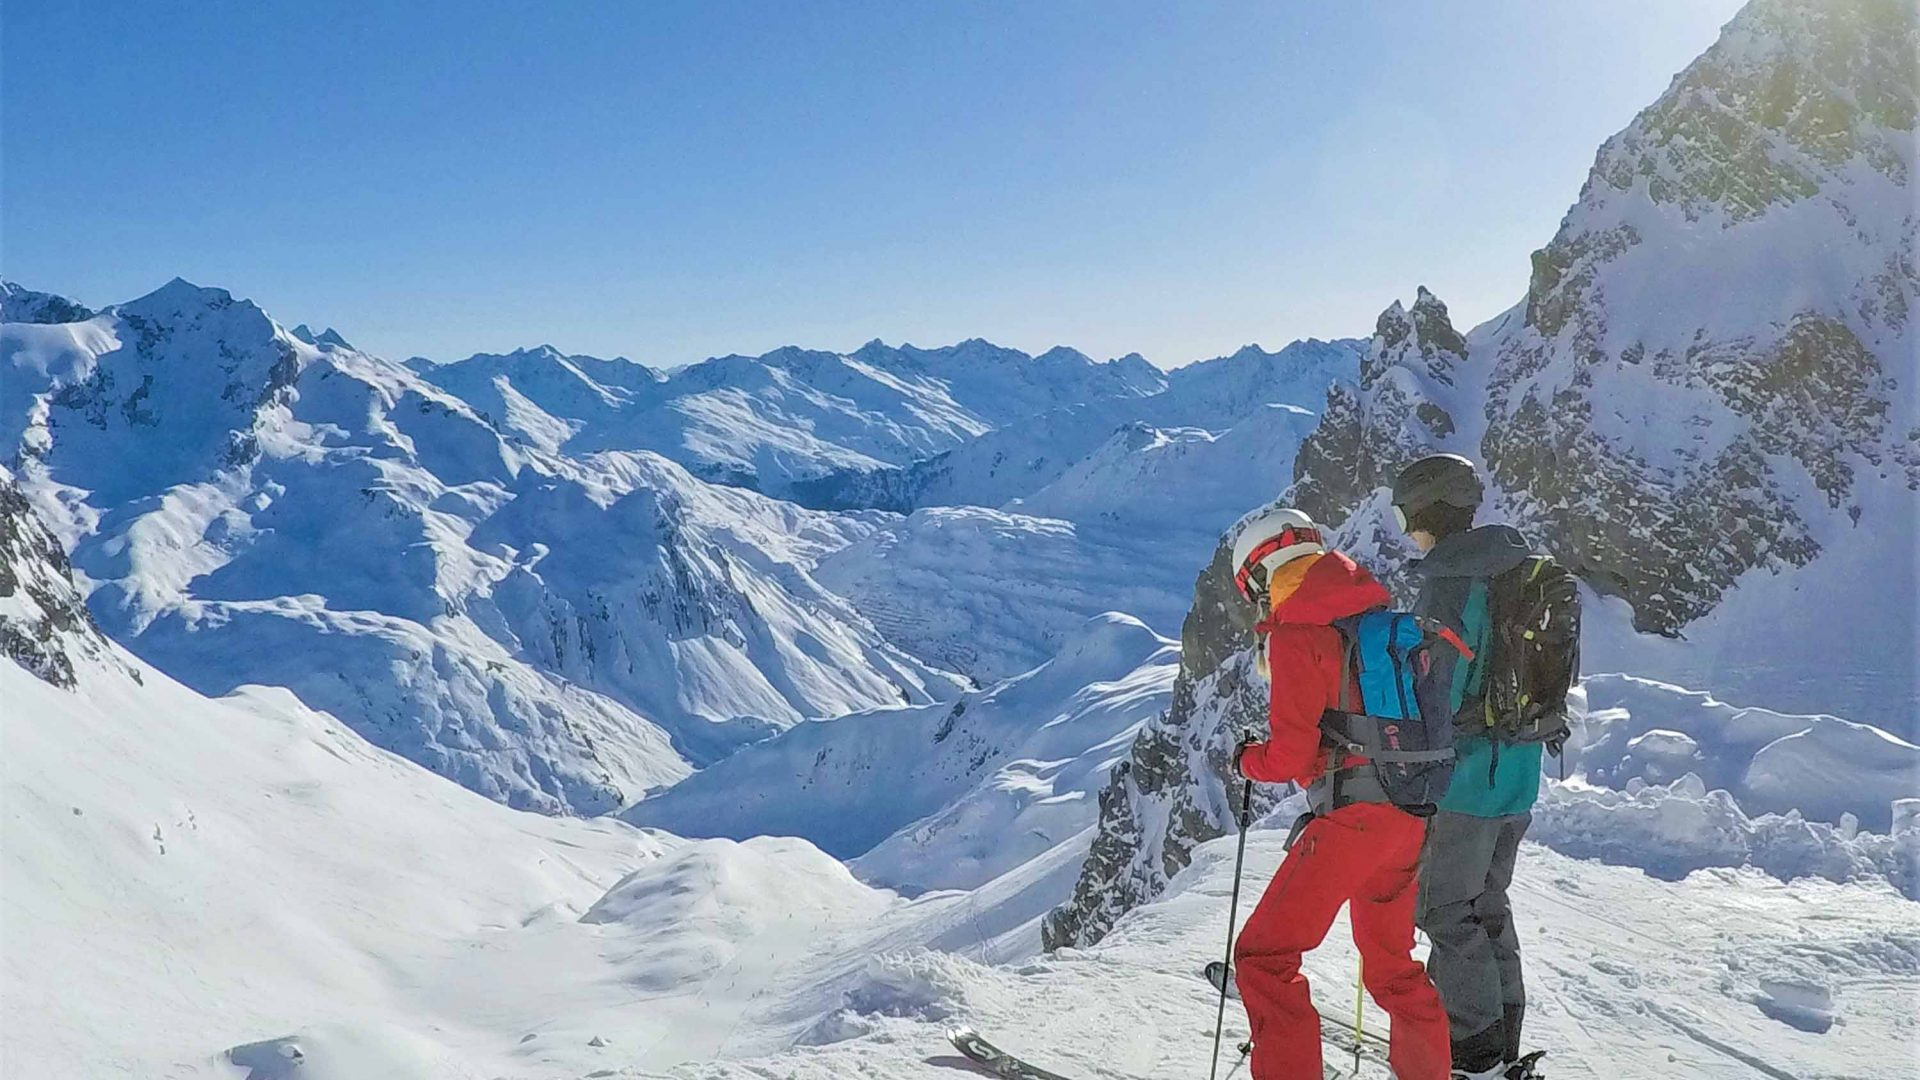 Two skiers stand at the edge of a mountain in St. Anton am Arlberg, Austria.